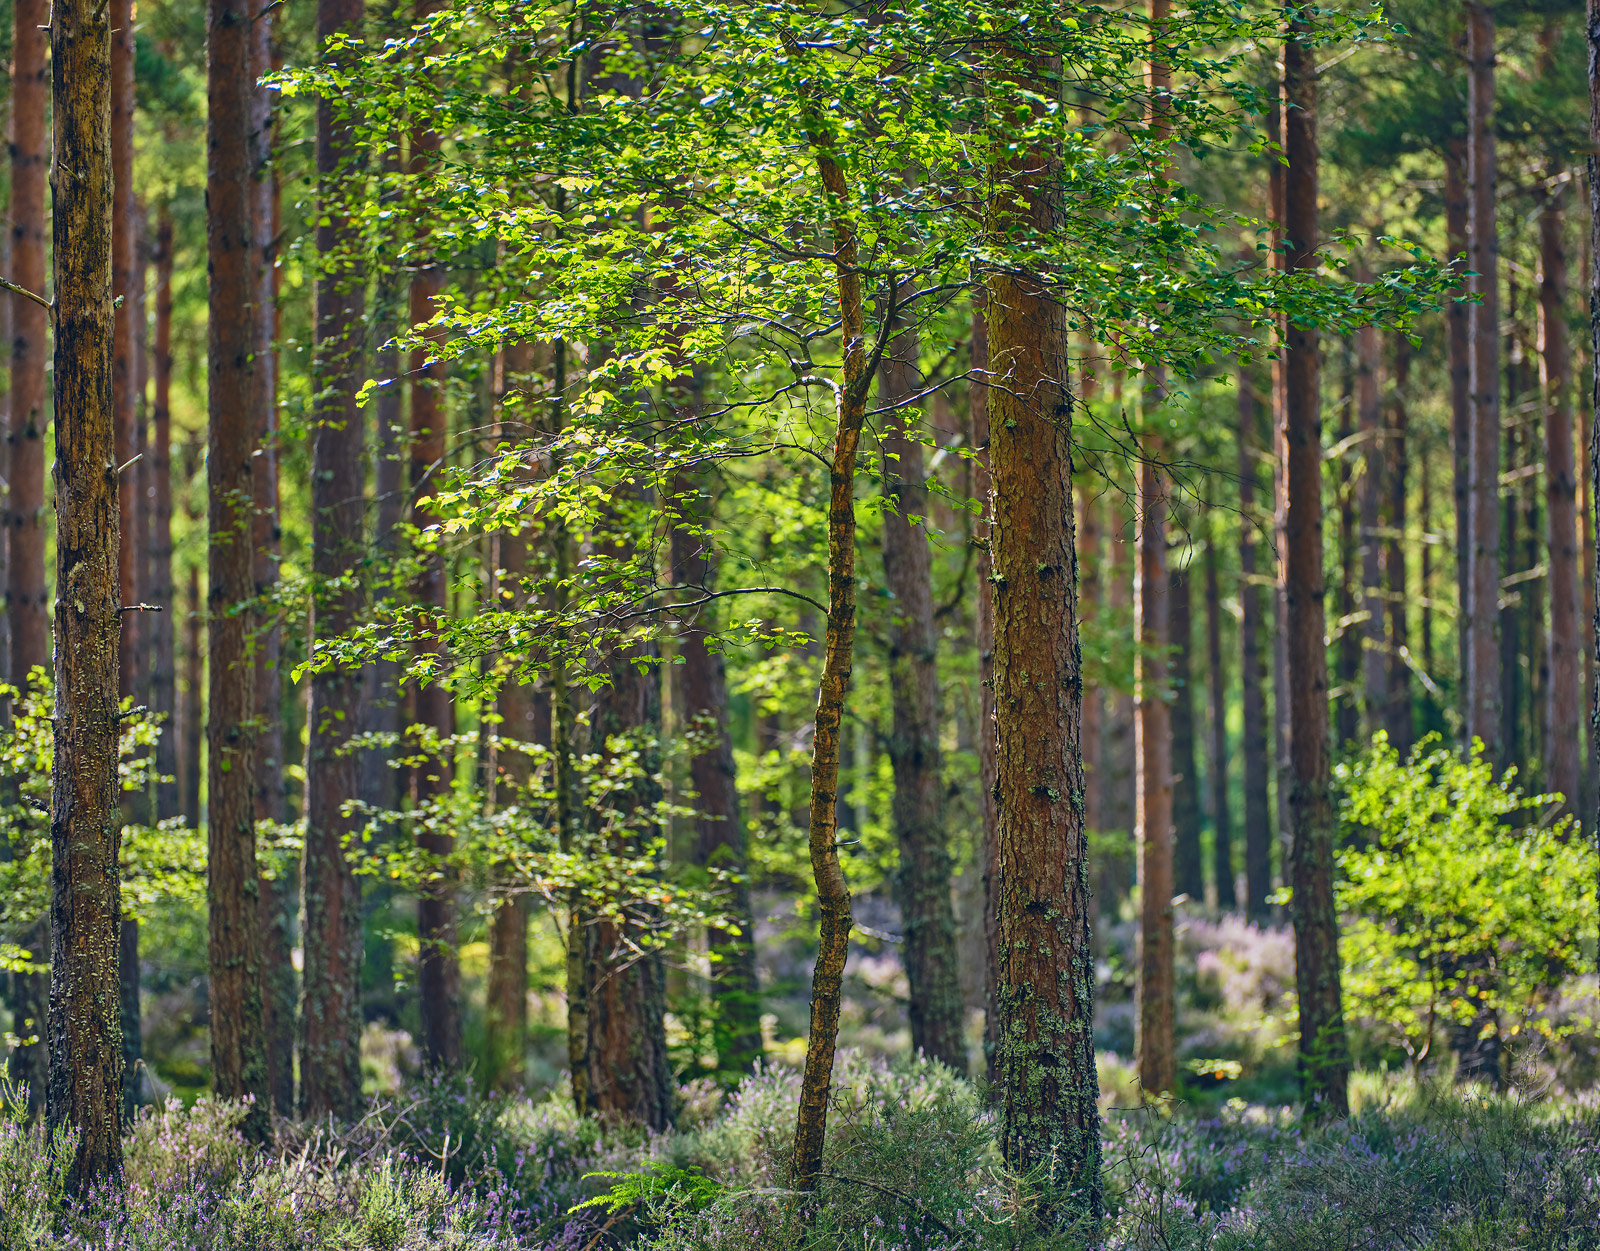 Young birch trees struggling for sunlight between the pine trees at Blairs Loch in Forres.